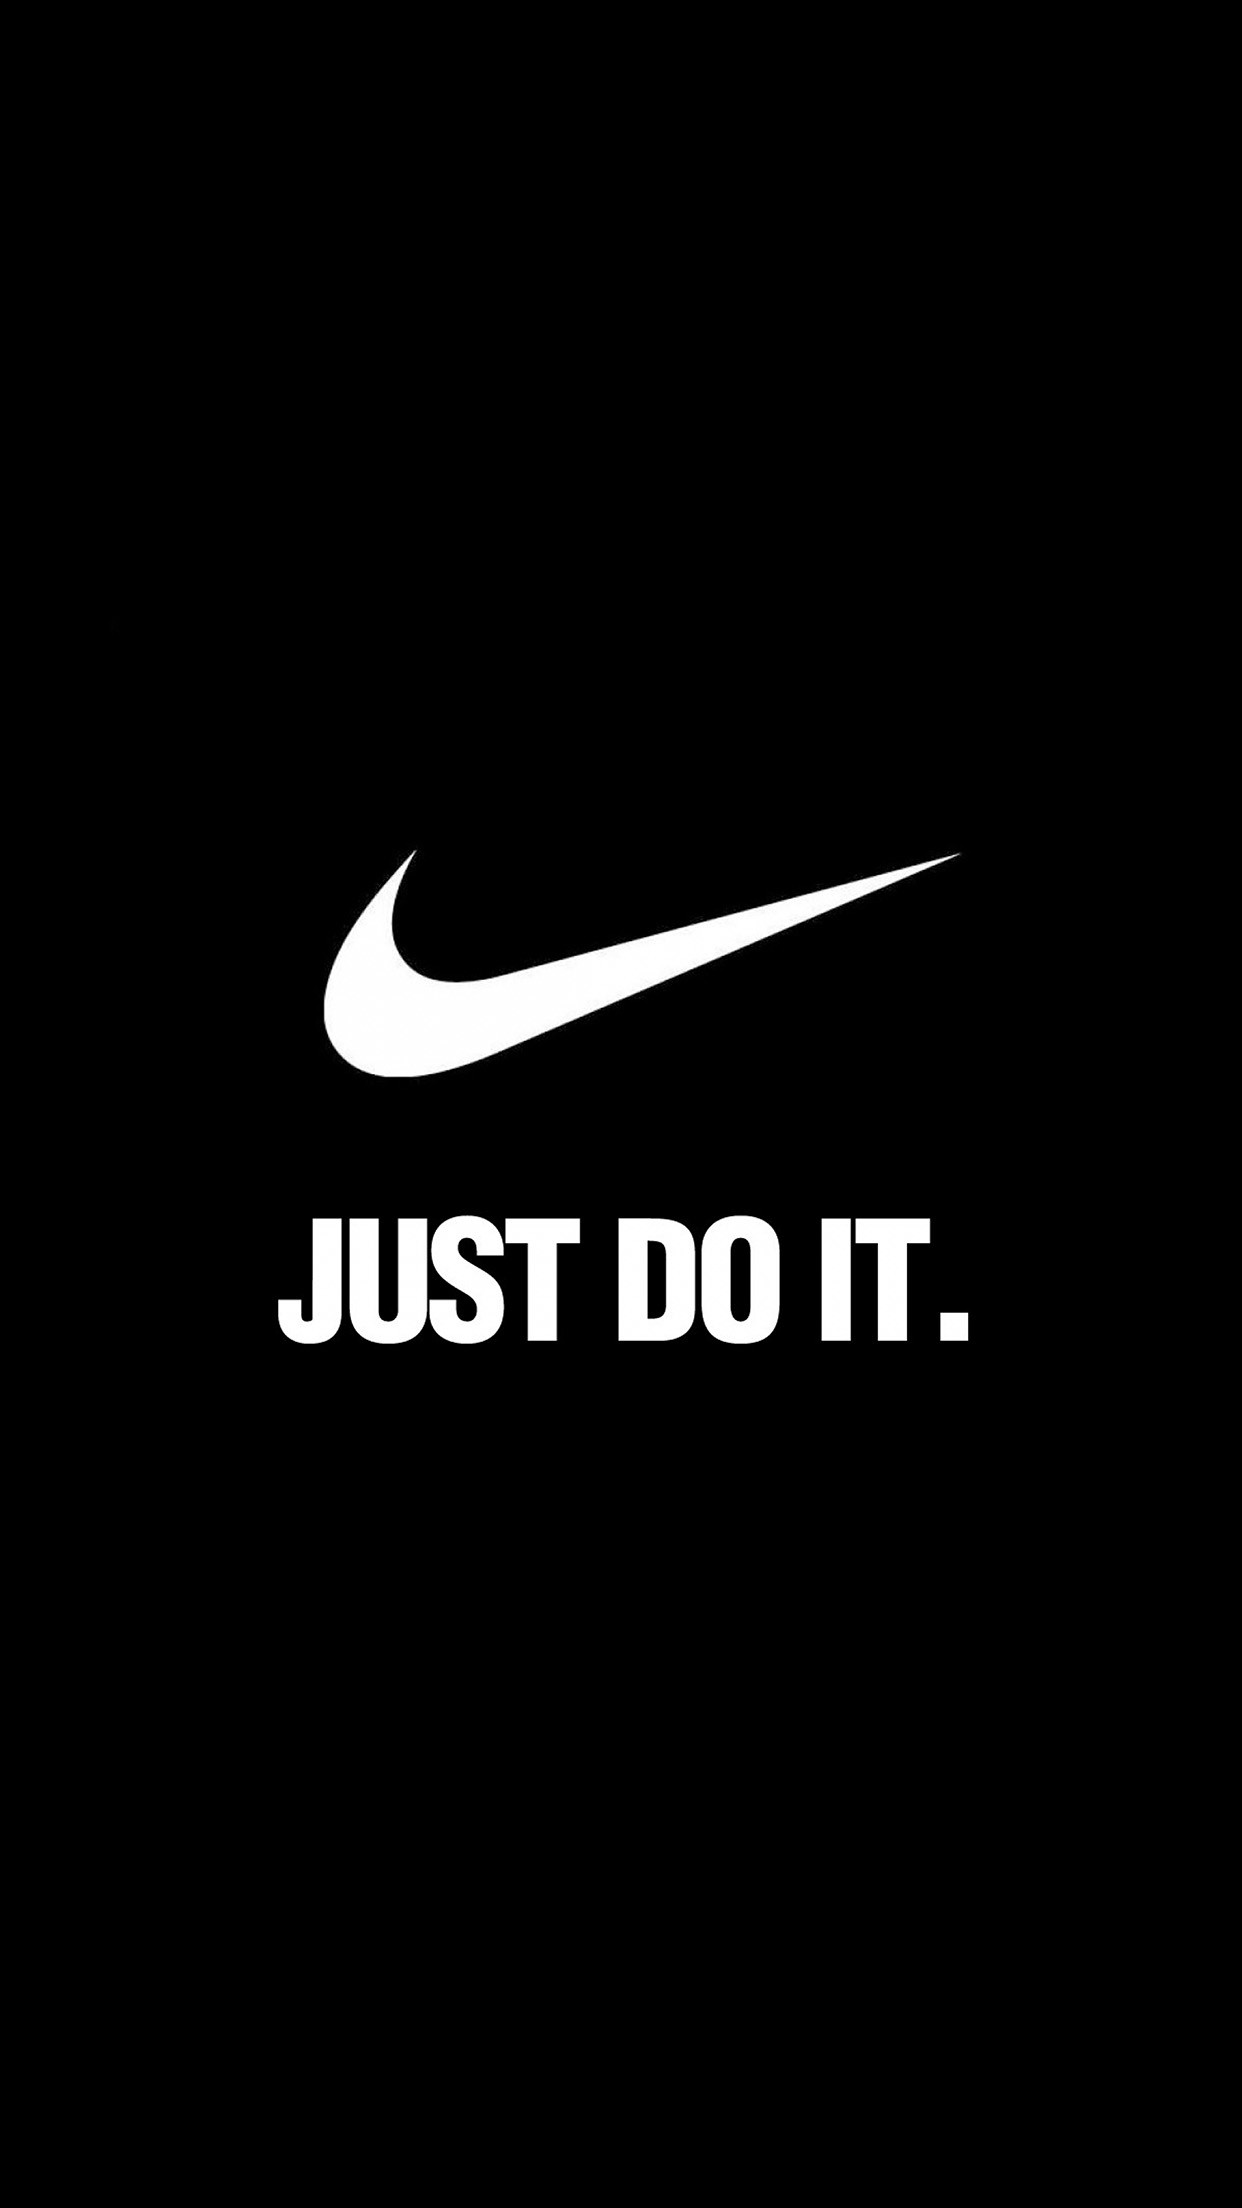 Nike Wallpaper Just Do It Wallpapertag